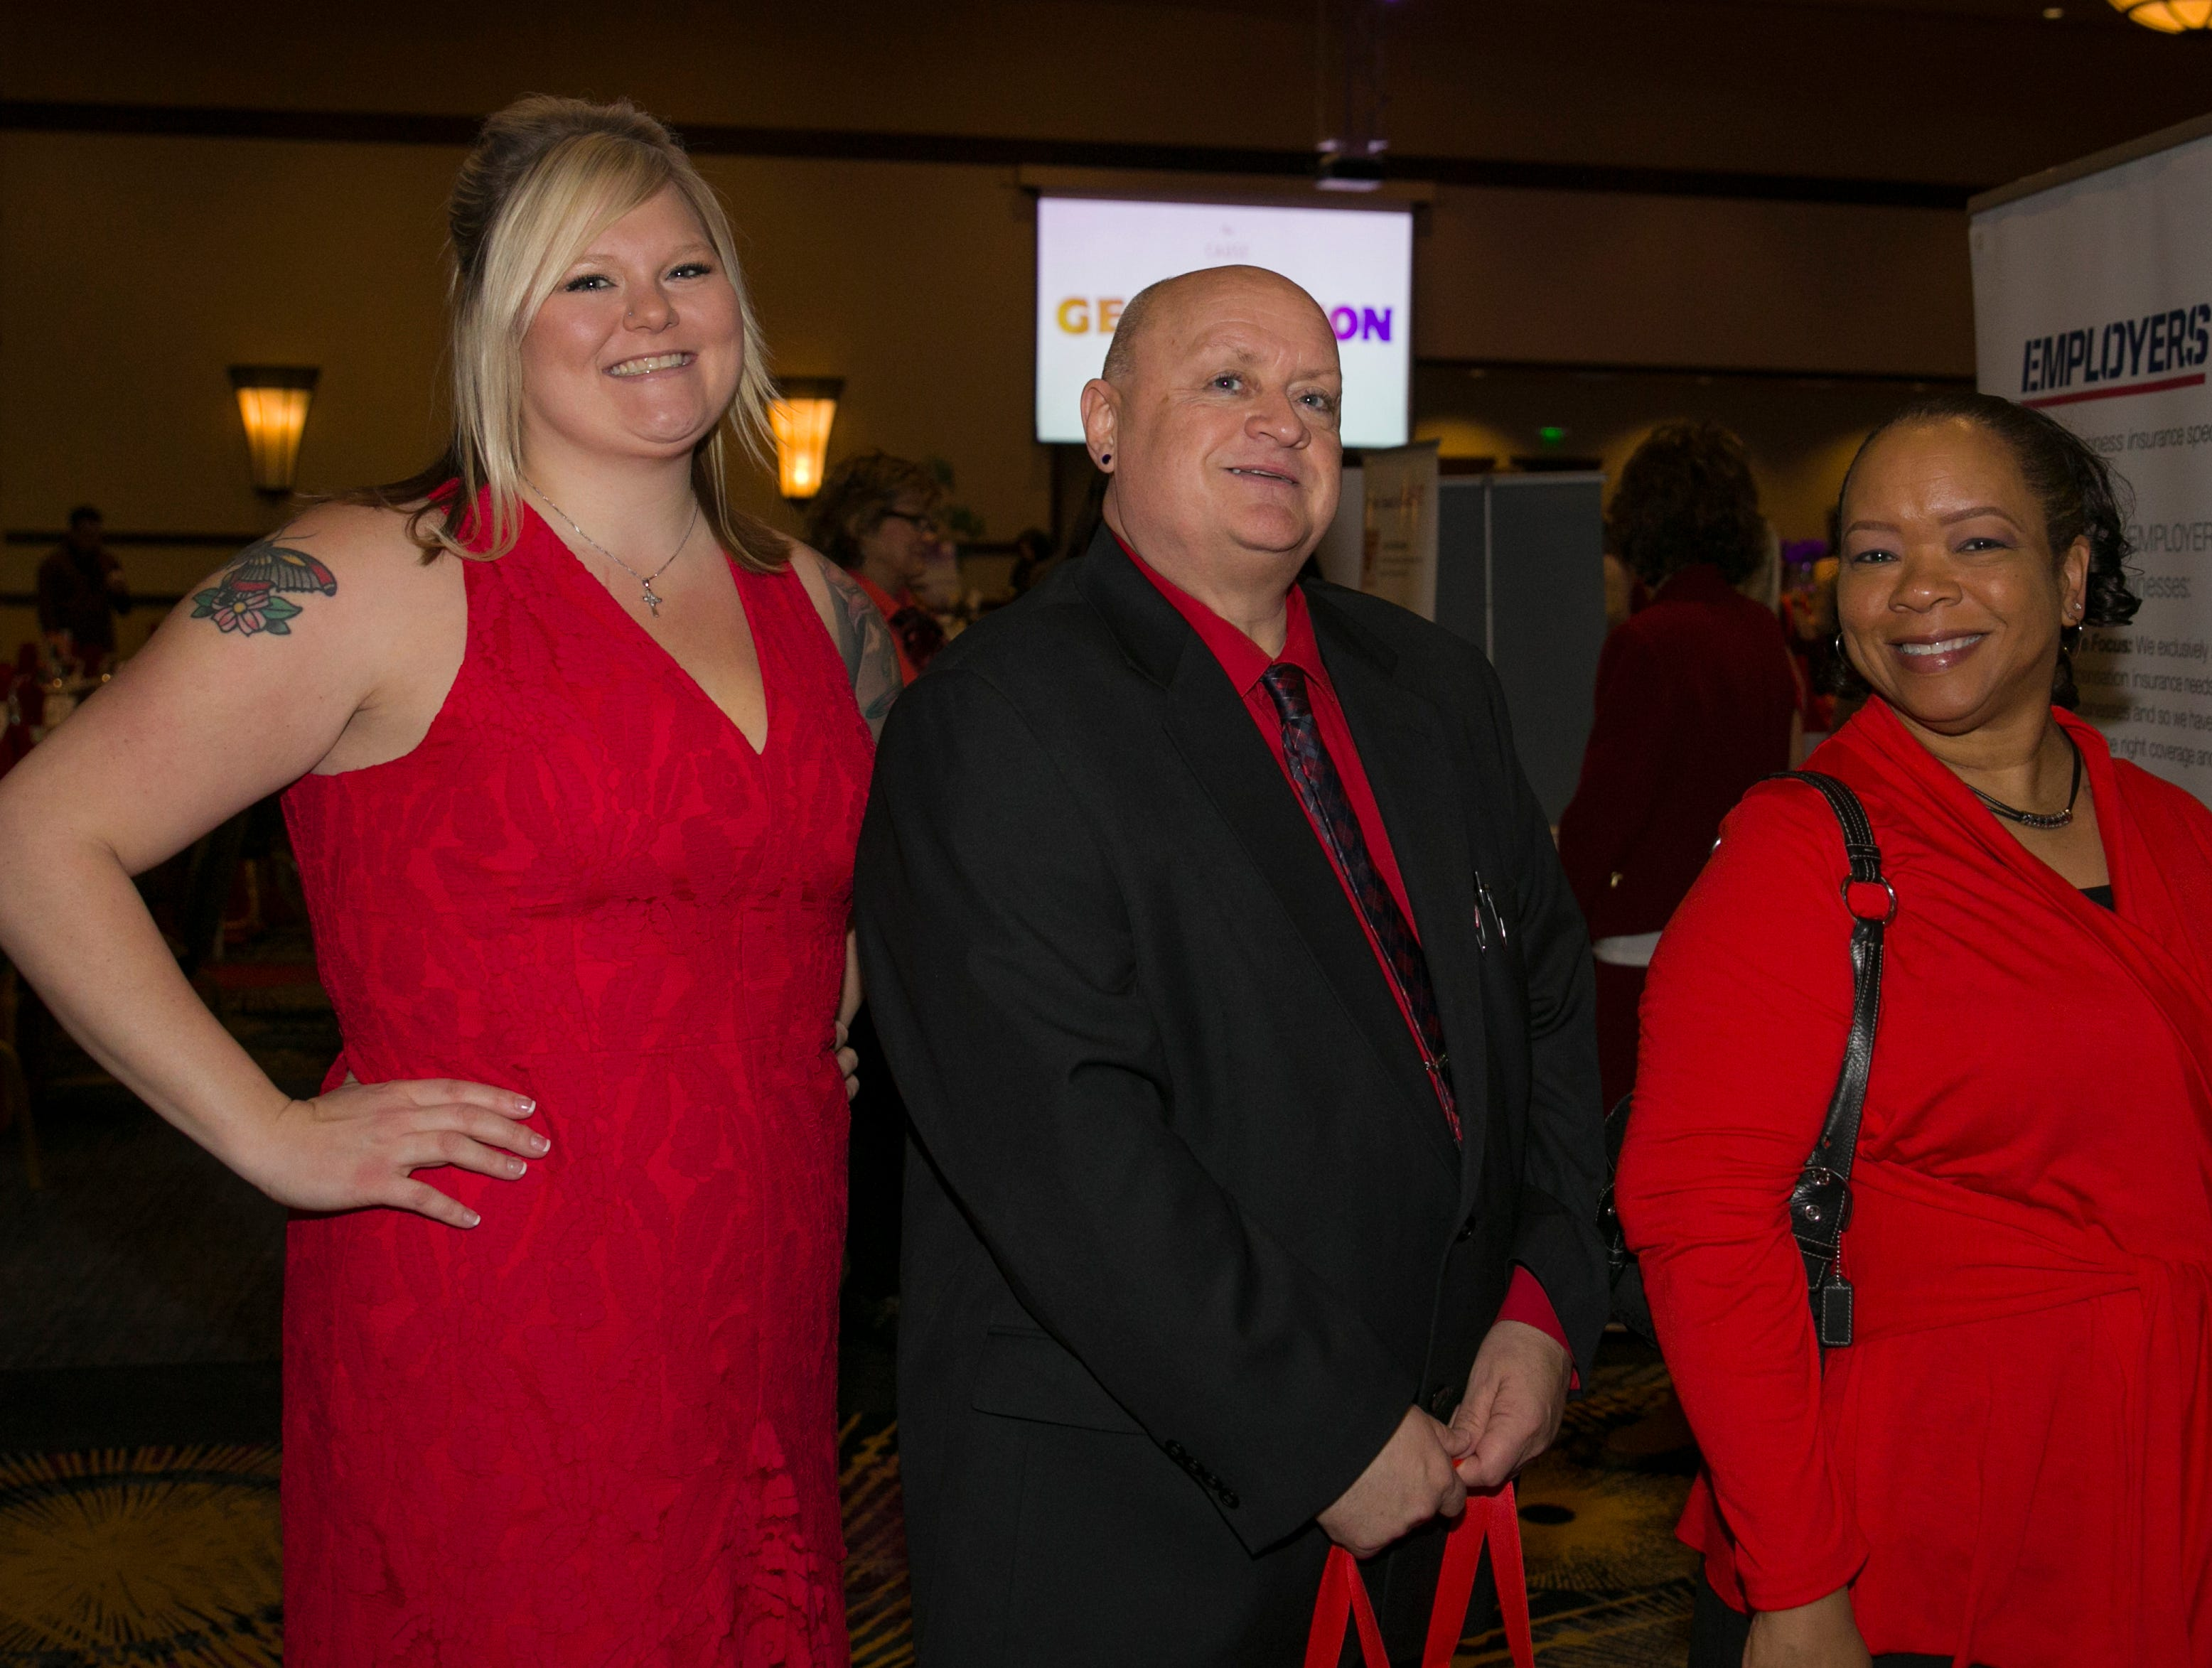 Mel Rems, Jay Wilson and Lilli Walker during the 15th Annual Go Red for Women Luncheon on Friday night,March 1, 2019 held at the downtown Reno Ballroom.